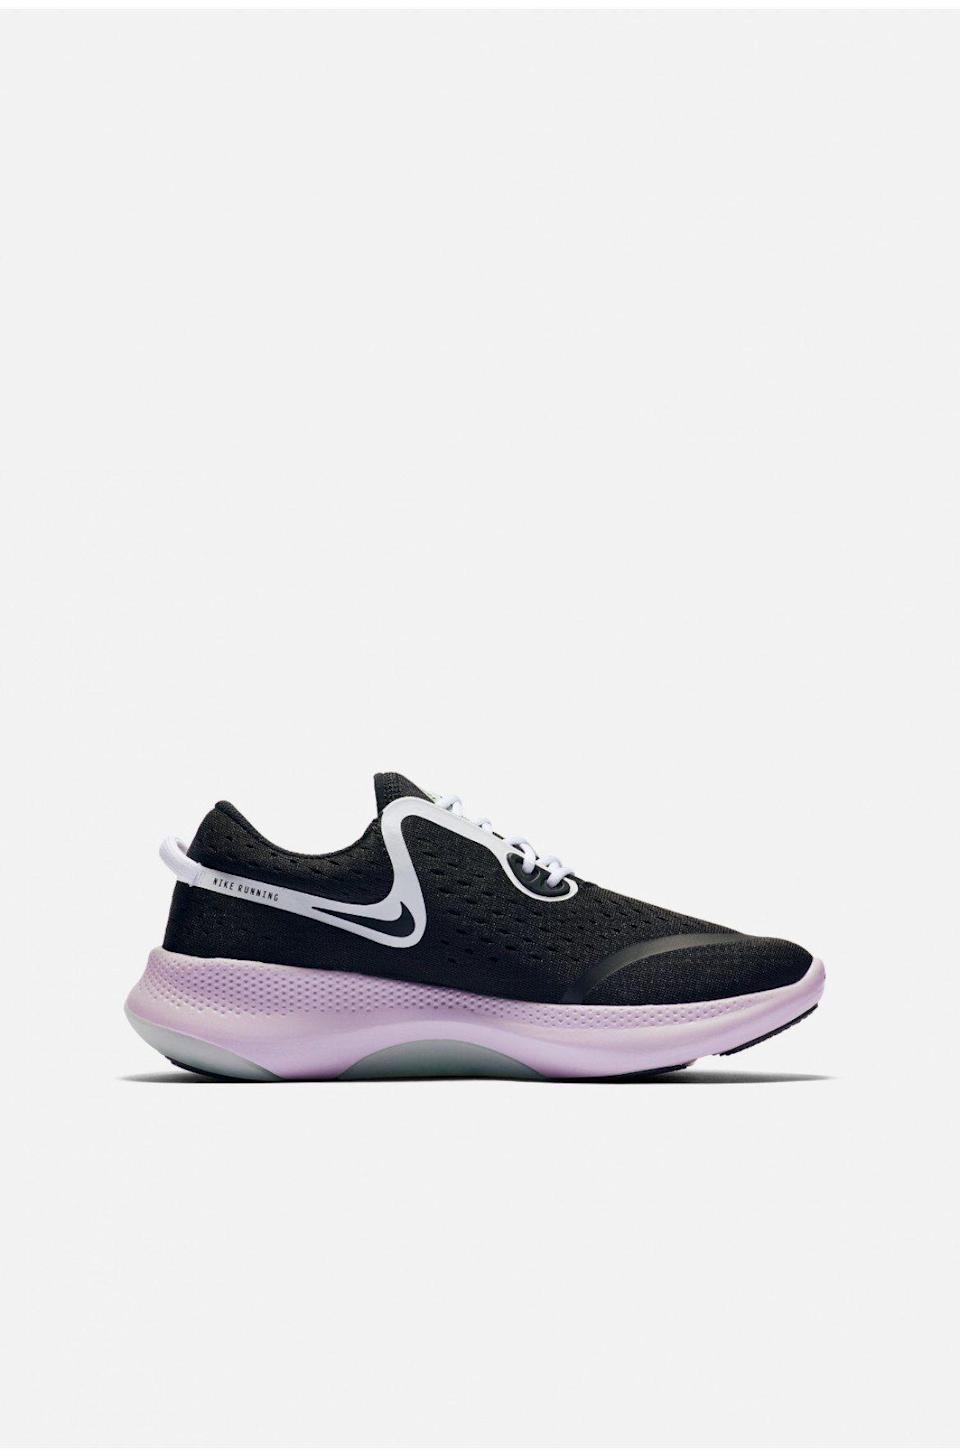 """<p><strong>Nike</strong></p><p>bandier.com</p><p><strong>$108.97</strong></p><p><a href=""""https://go.redirectingat.com?id=74968X1596630&url=https%3A%2F%2Fwww.bandier.com%2Fcollections%2Fsale-shoes%2Fproducts%2Fjoyride-dual-run-black&sref=https%3A%2F%2Fwww.womenshealthmag.com%2Ffitness%2Fg33075524%2Fbandier-july-4th-sale%2F"""" rel=""""nofollow noopener"""" target=""""_blank"""" data-ylk=""""slk:SHOP NOW"""" class=""""link rapid-noclick-resp"""">SHOP NOW</a></p><p><strong><del>$130</del> <del>$108.97</del> Now $65.38</strong></p><p>A favorite of <em>Women's Health </em>editors, this classic Nike running sneaker offers ample support and agility. </p>"""